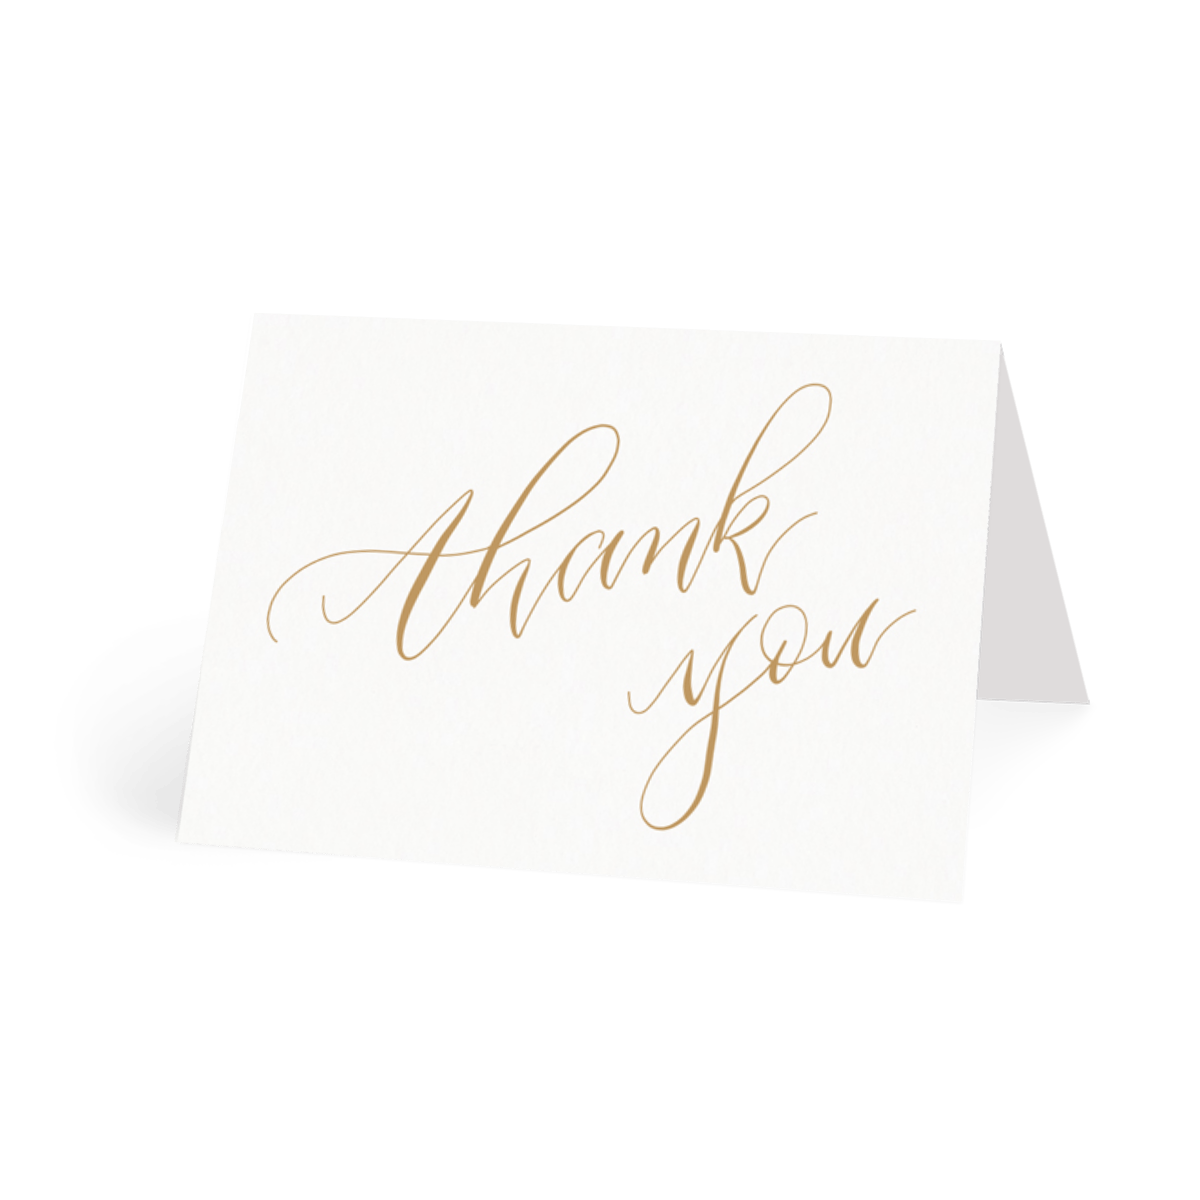 Https%3a%2f%2fwww.papier.com%2fproduct image%2f17521%2f14%2fthank you calligraphy gold 4594 vorderseite 1532447199.png?ixlib=rb 1.1